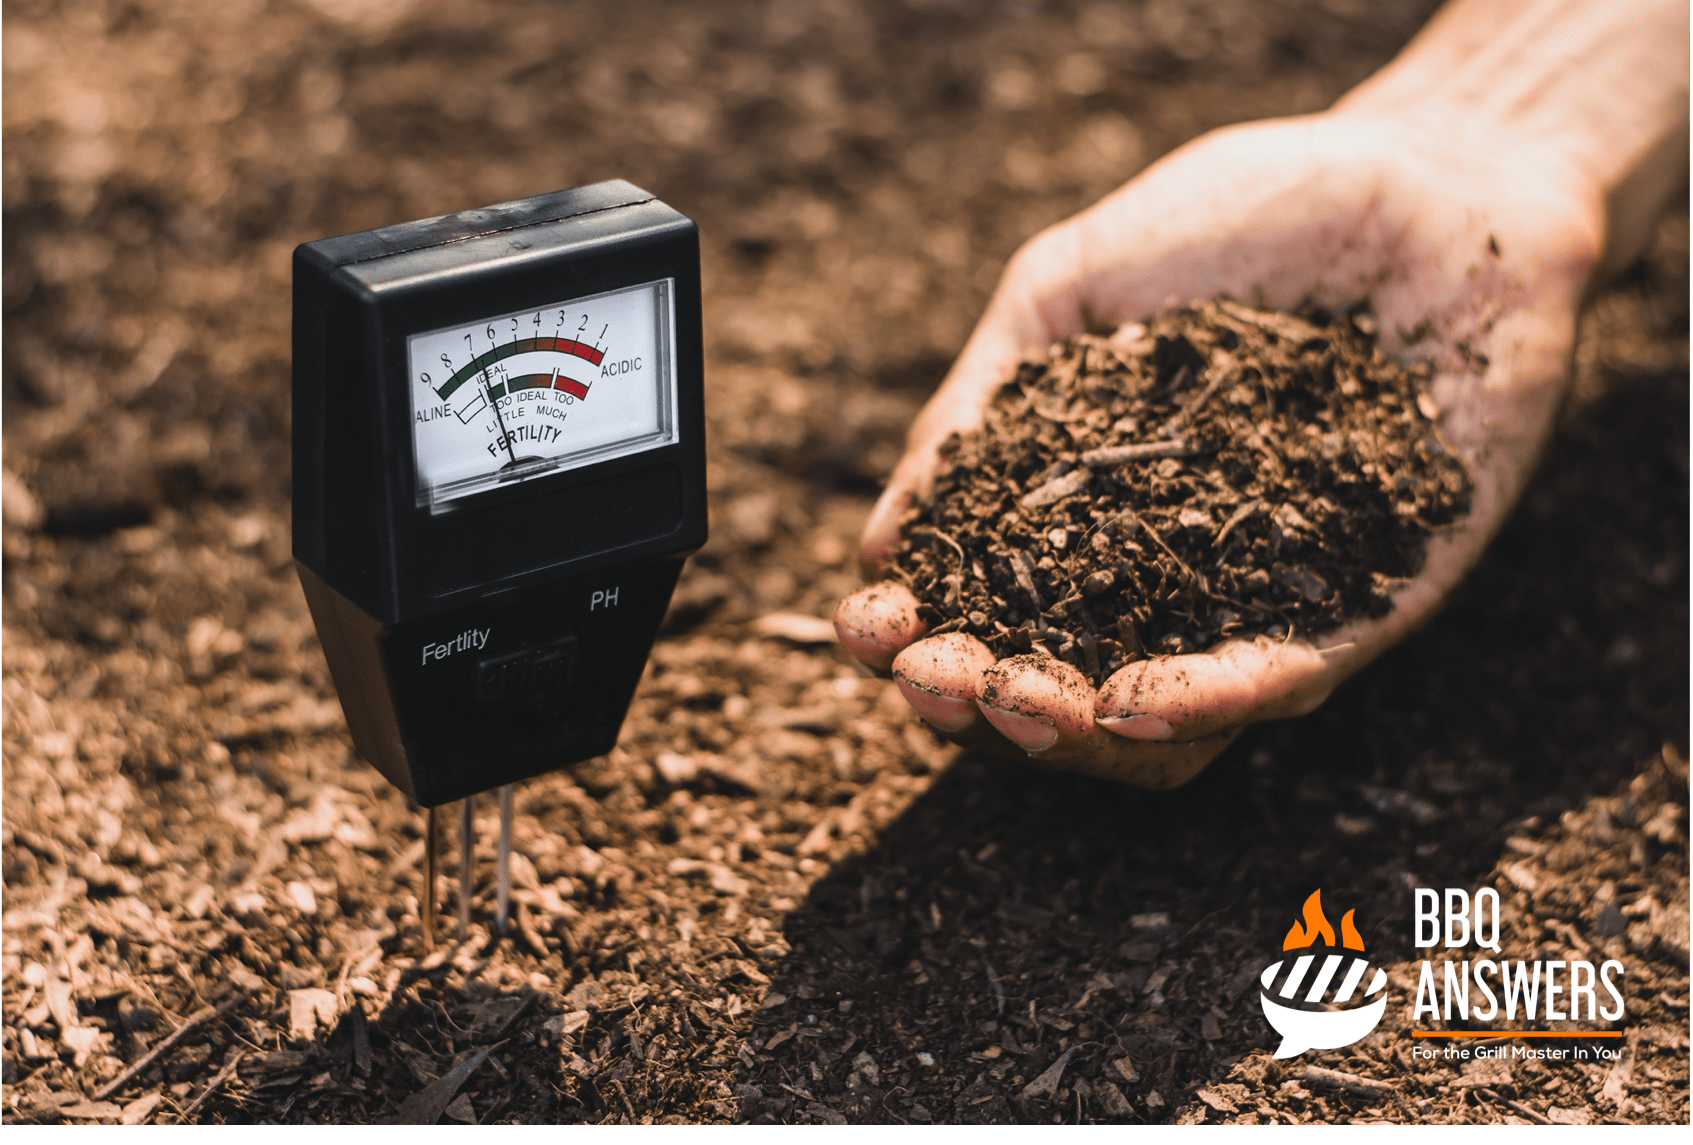 Soil meter | Benefits of Adding Ash to Soil | Using BBQ Ash for Plants | BBQanswers